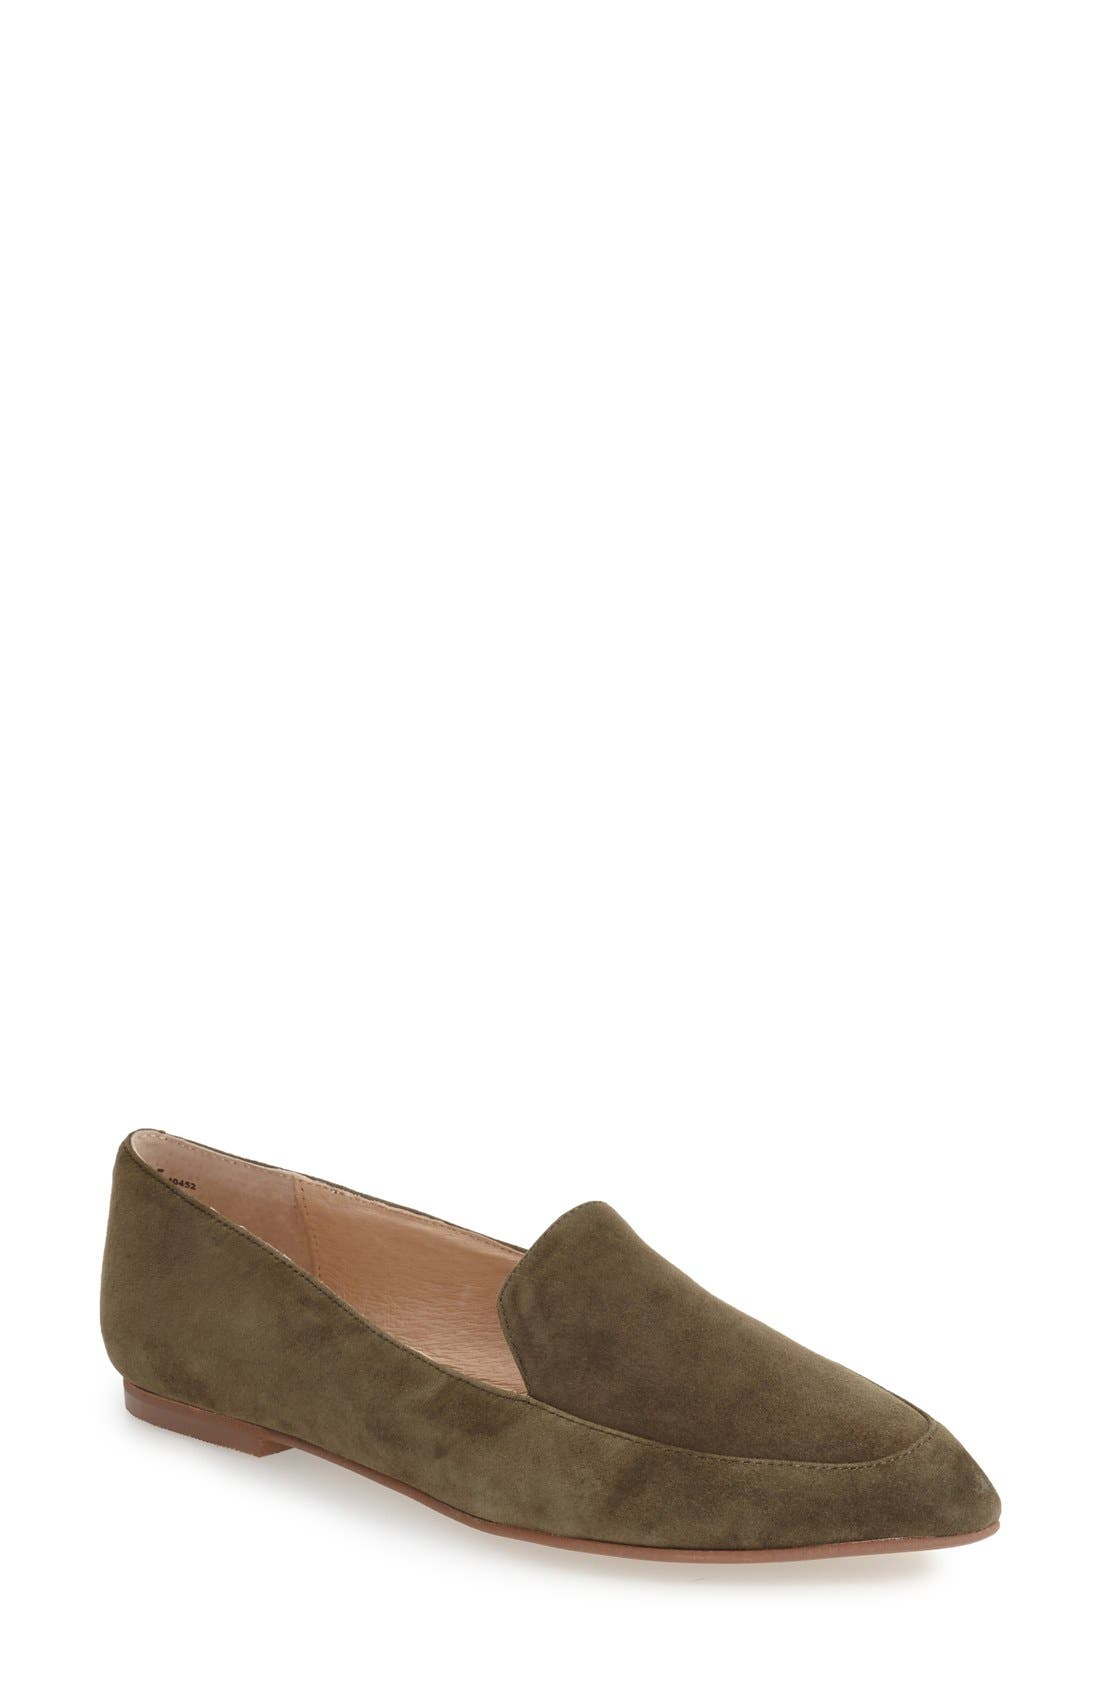 'Chandy' Loafer,                             Main thumbnail 1, color,                             Olive Suede